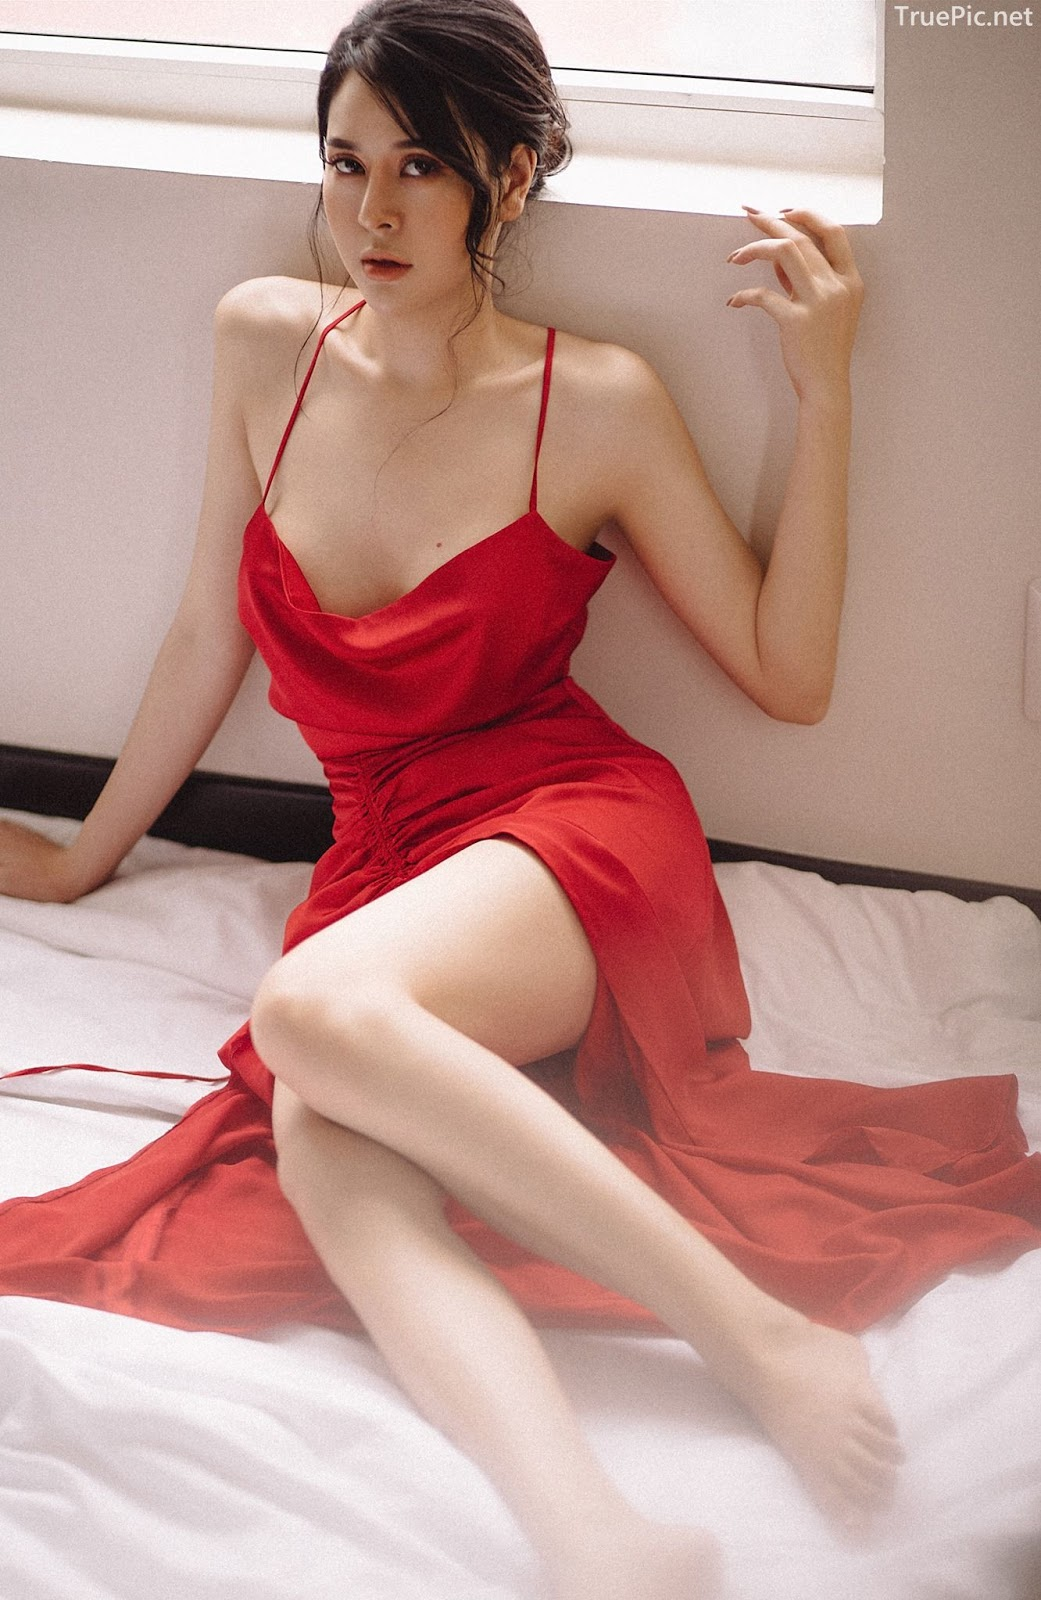 Vietnamese hot model - The beauty of Women with Red Camisole Dress - Photo by Linh Phan - Picture 10